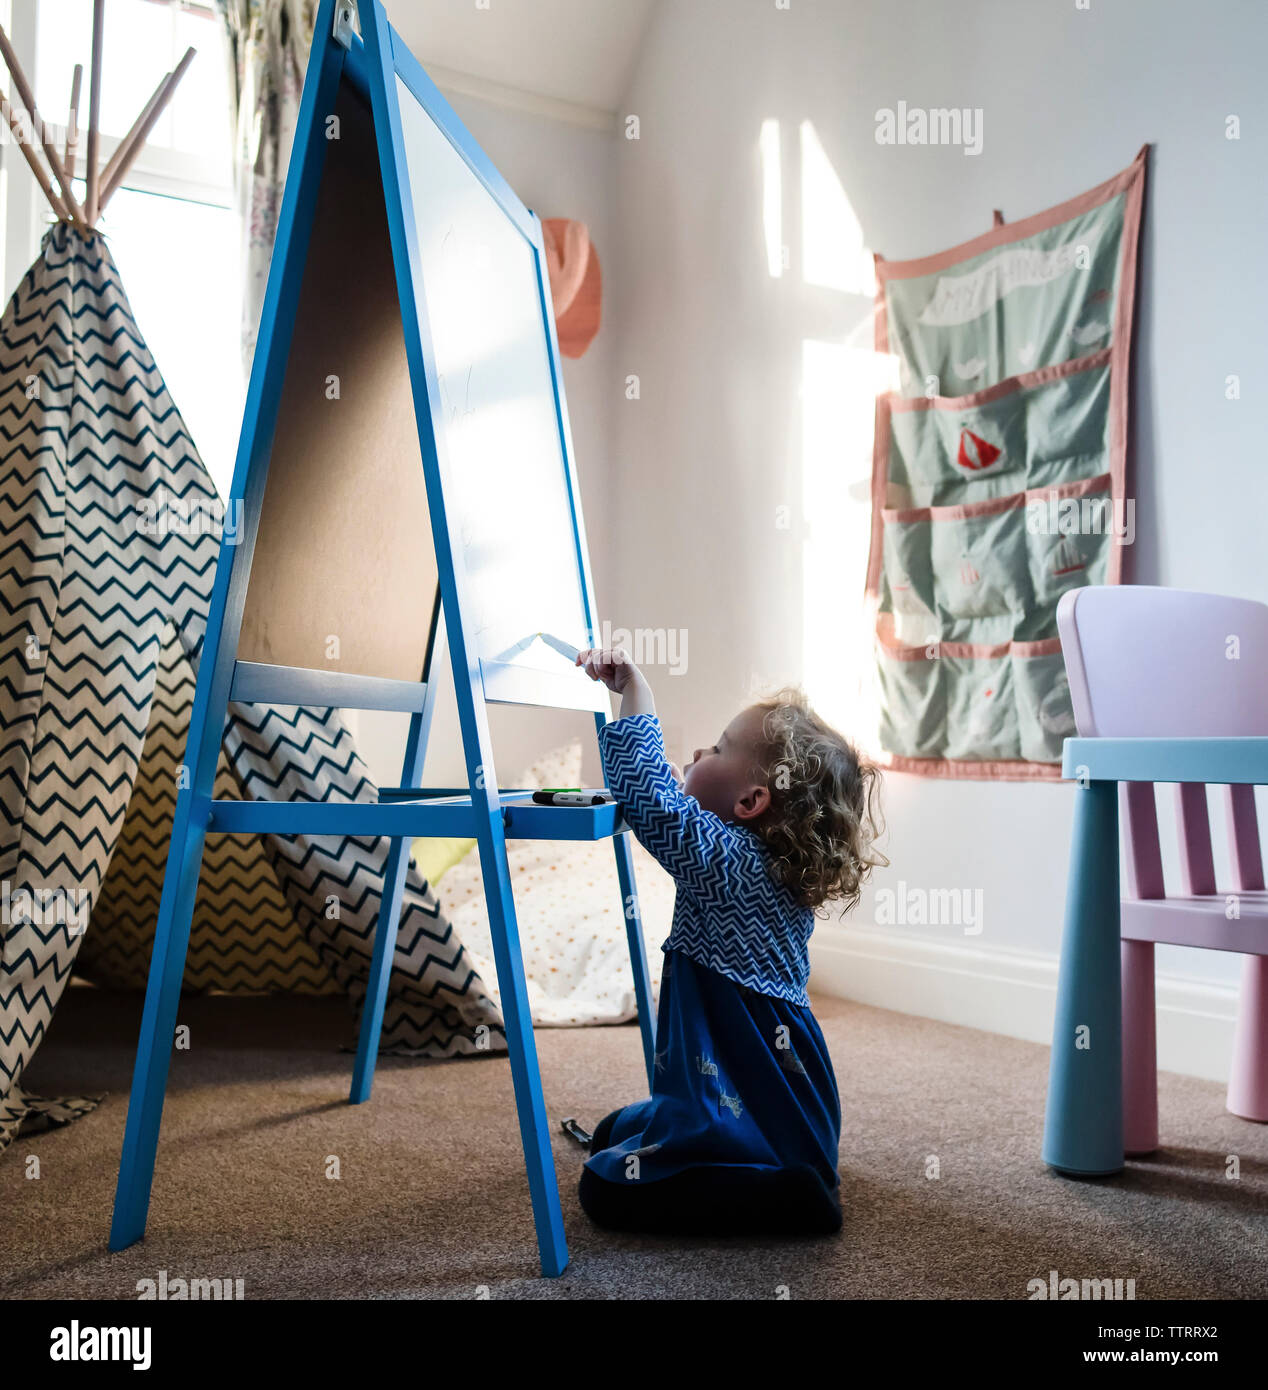 Girl writing on artist's canvas while sitting on rug at home - Stock Image